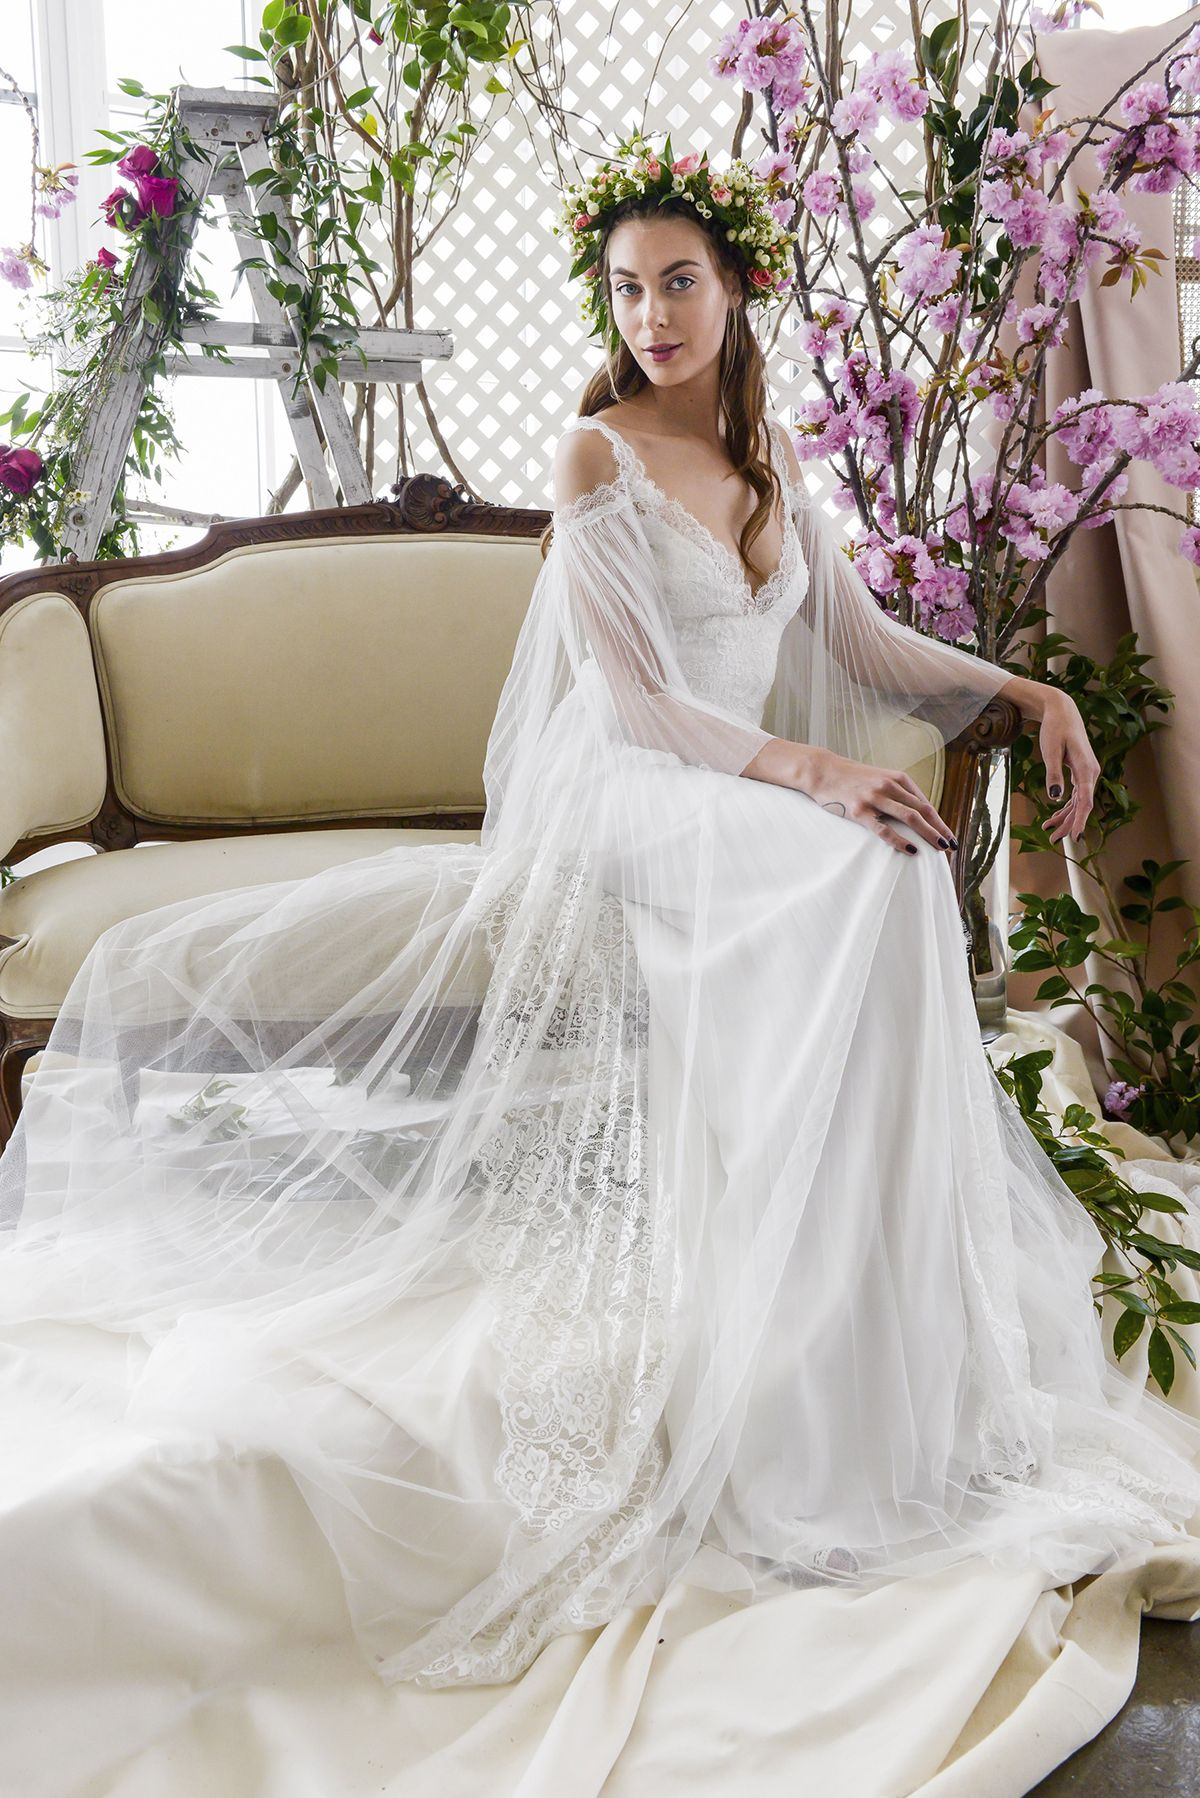 Gorgeous wedding dress with tulle sleeves and dramatic train